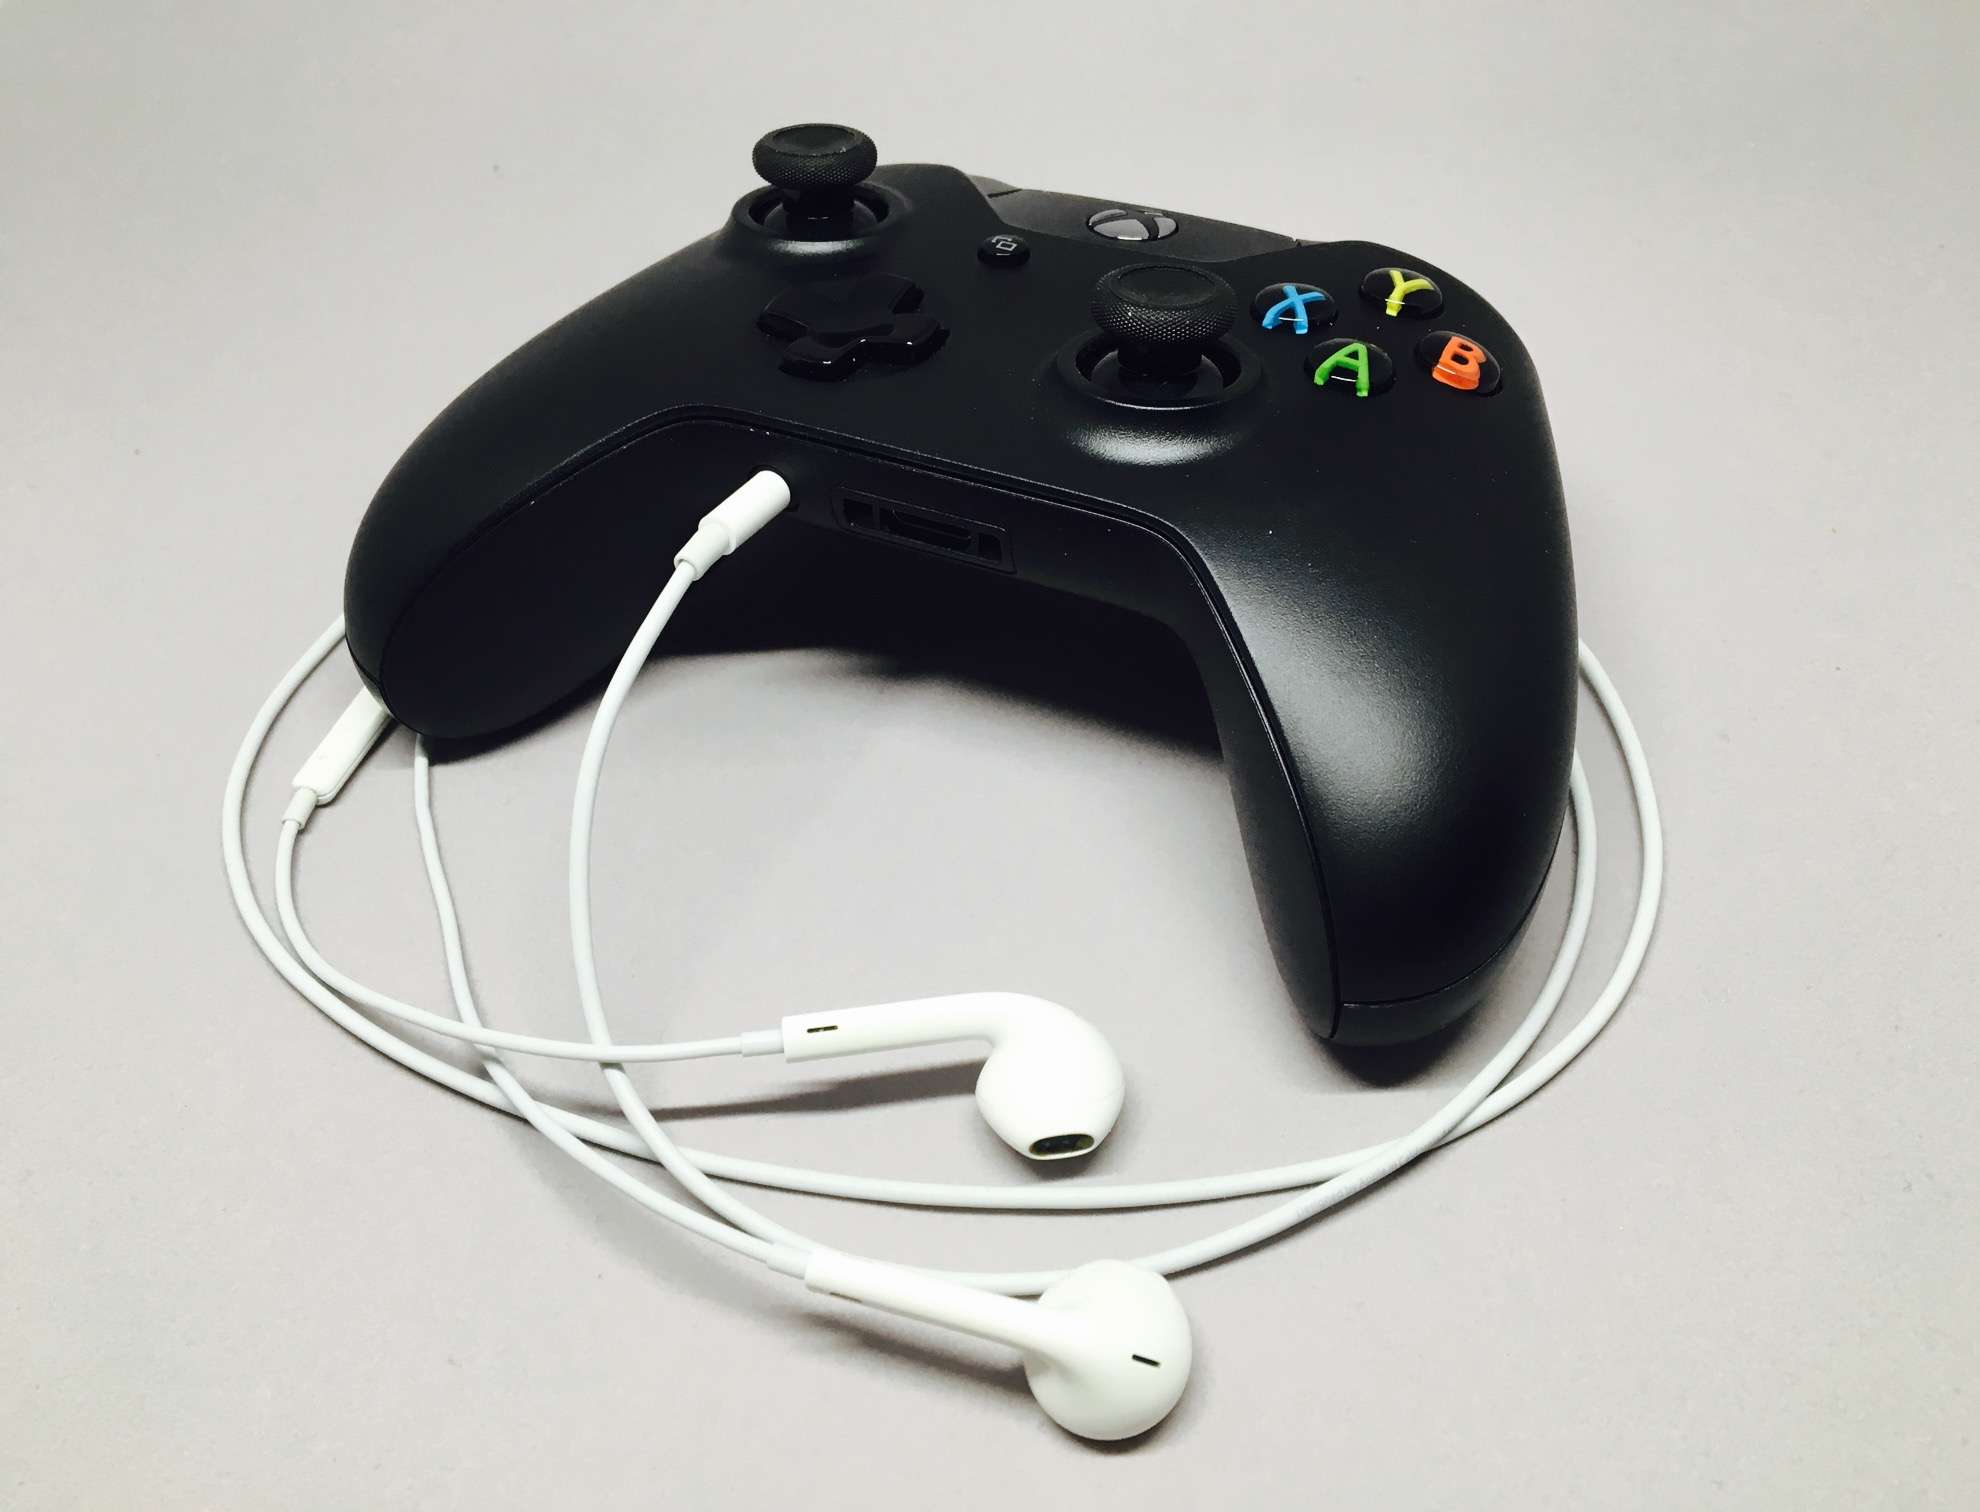 How to make EarPods play nicely with Xbox One | Cult of Mac